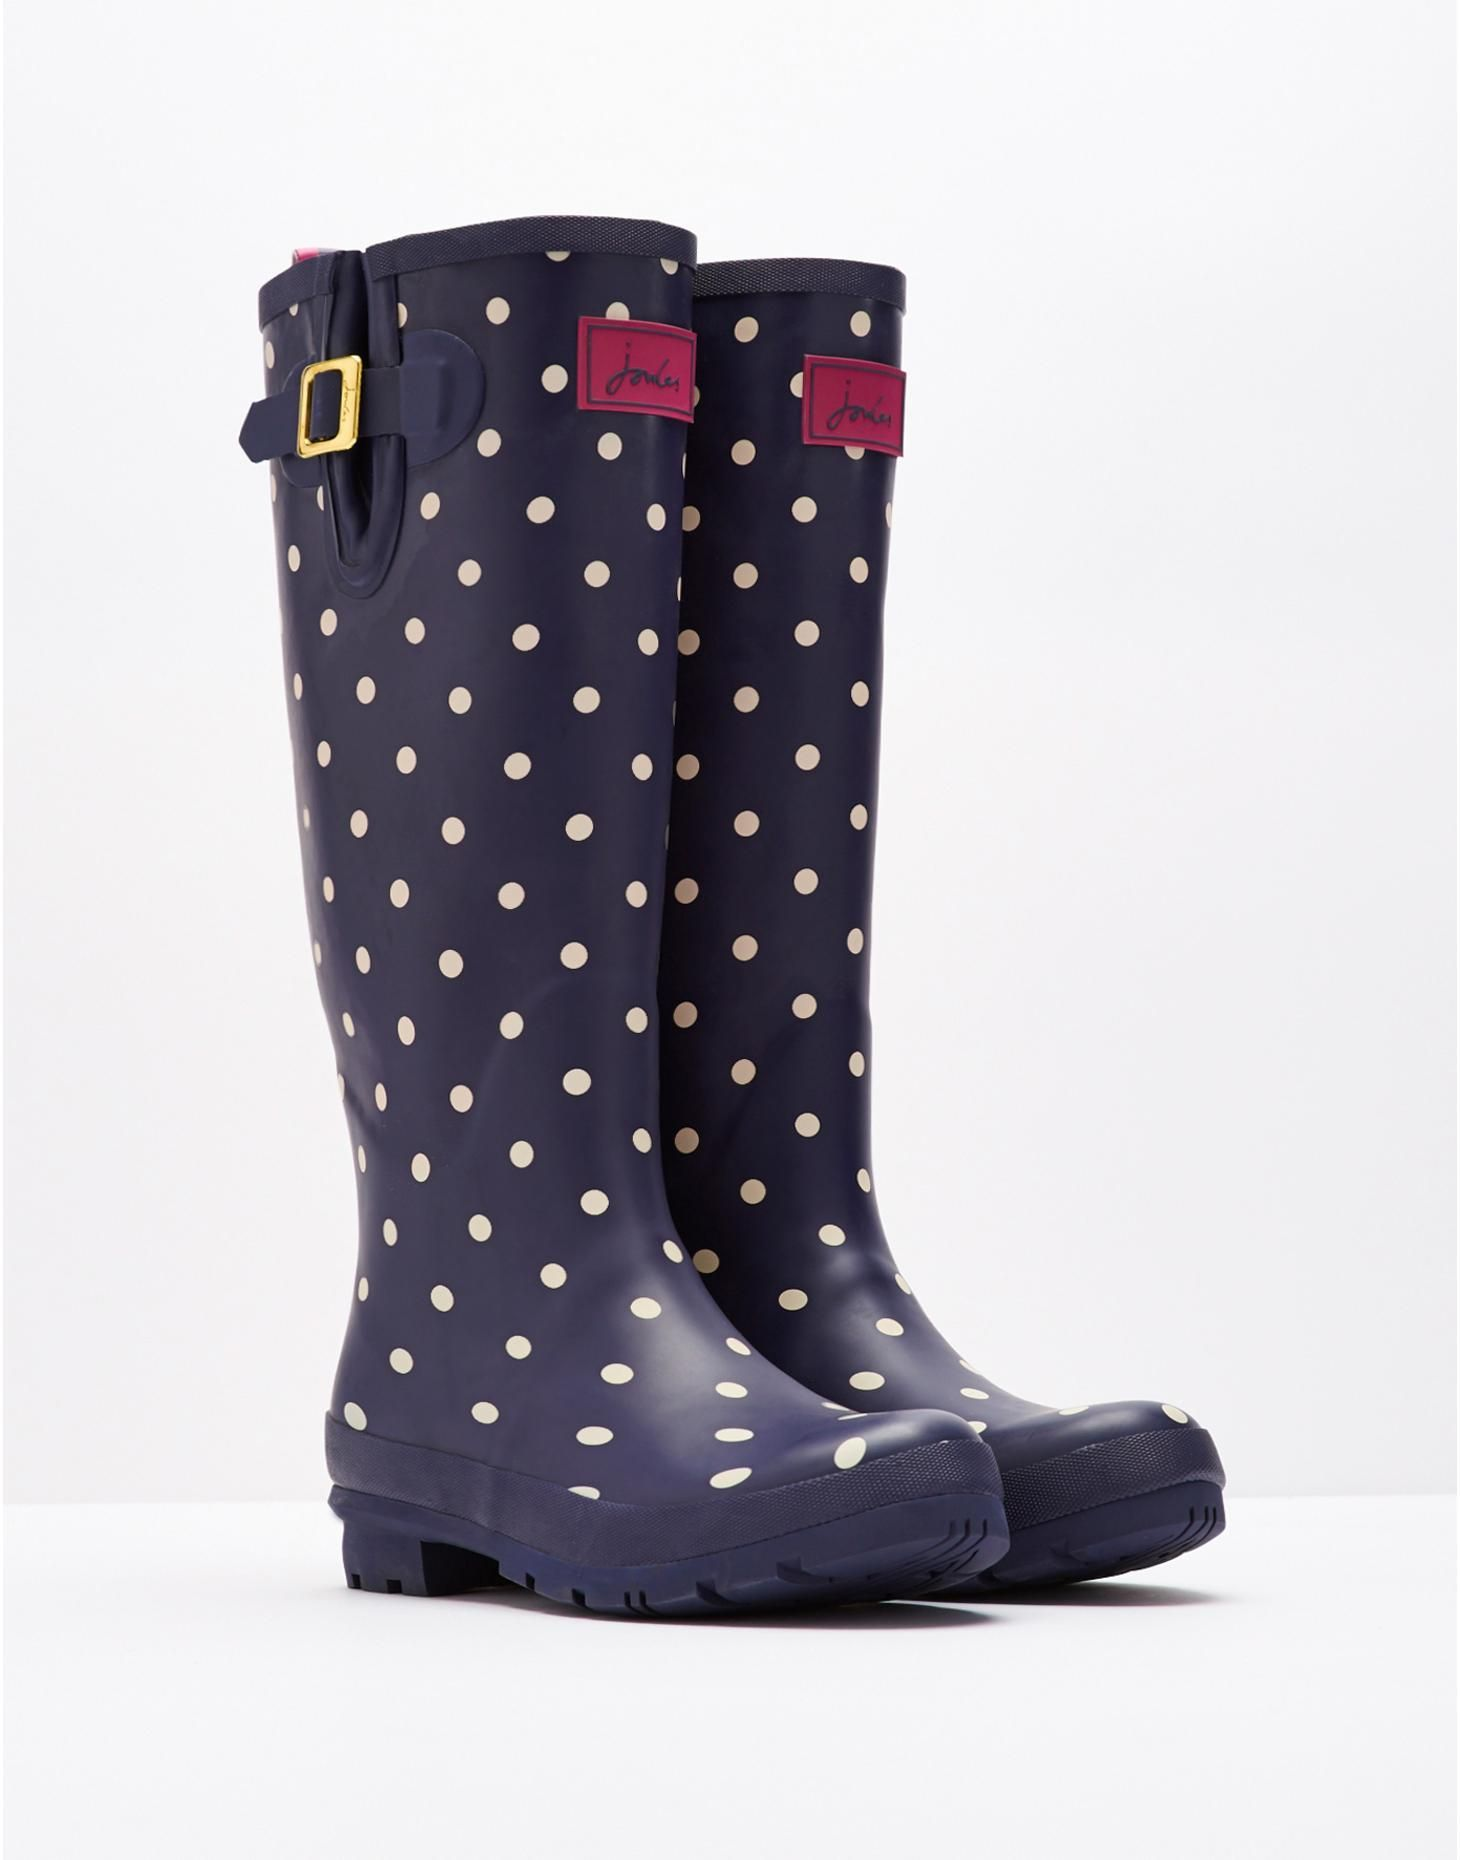 Joules Printed Womens Boots Wellington Navy Spot All Sizes